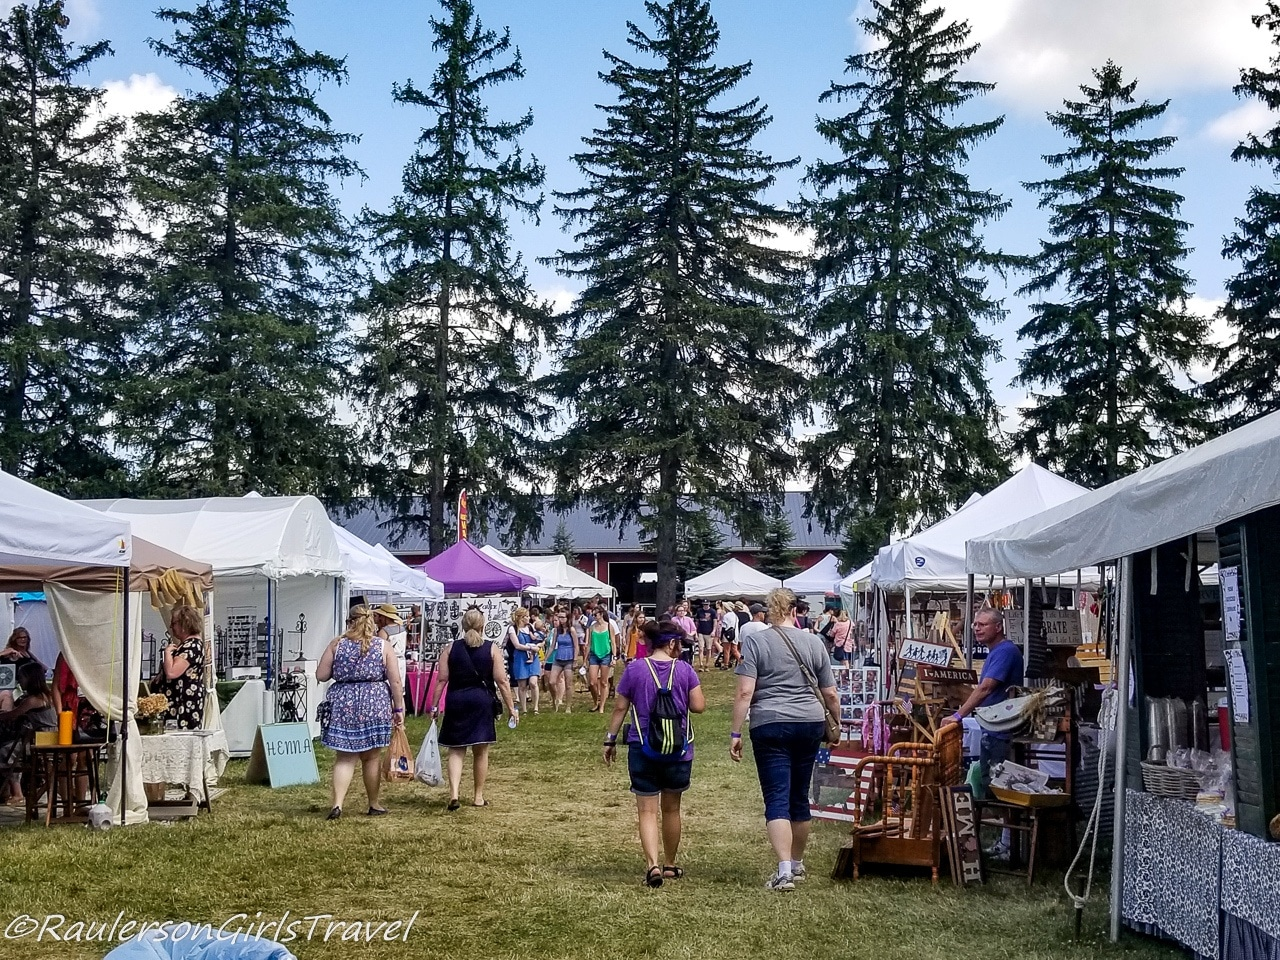 People walking through the Michigan Lavender Festival